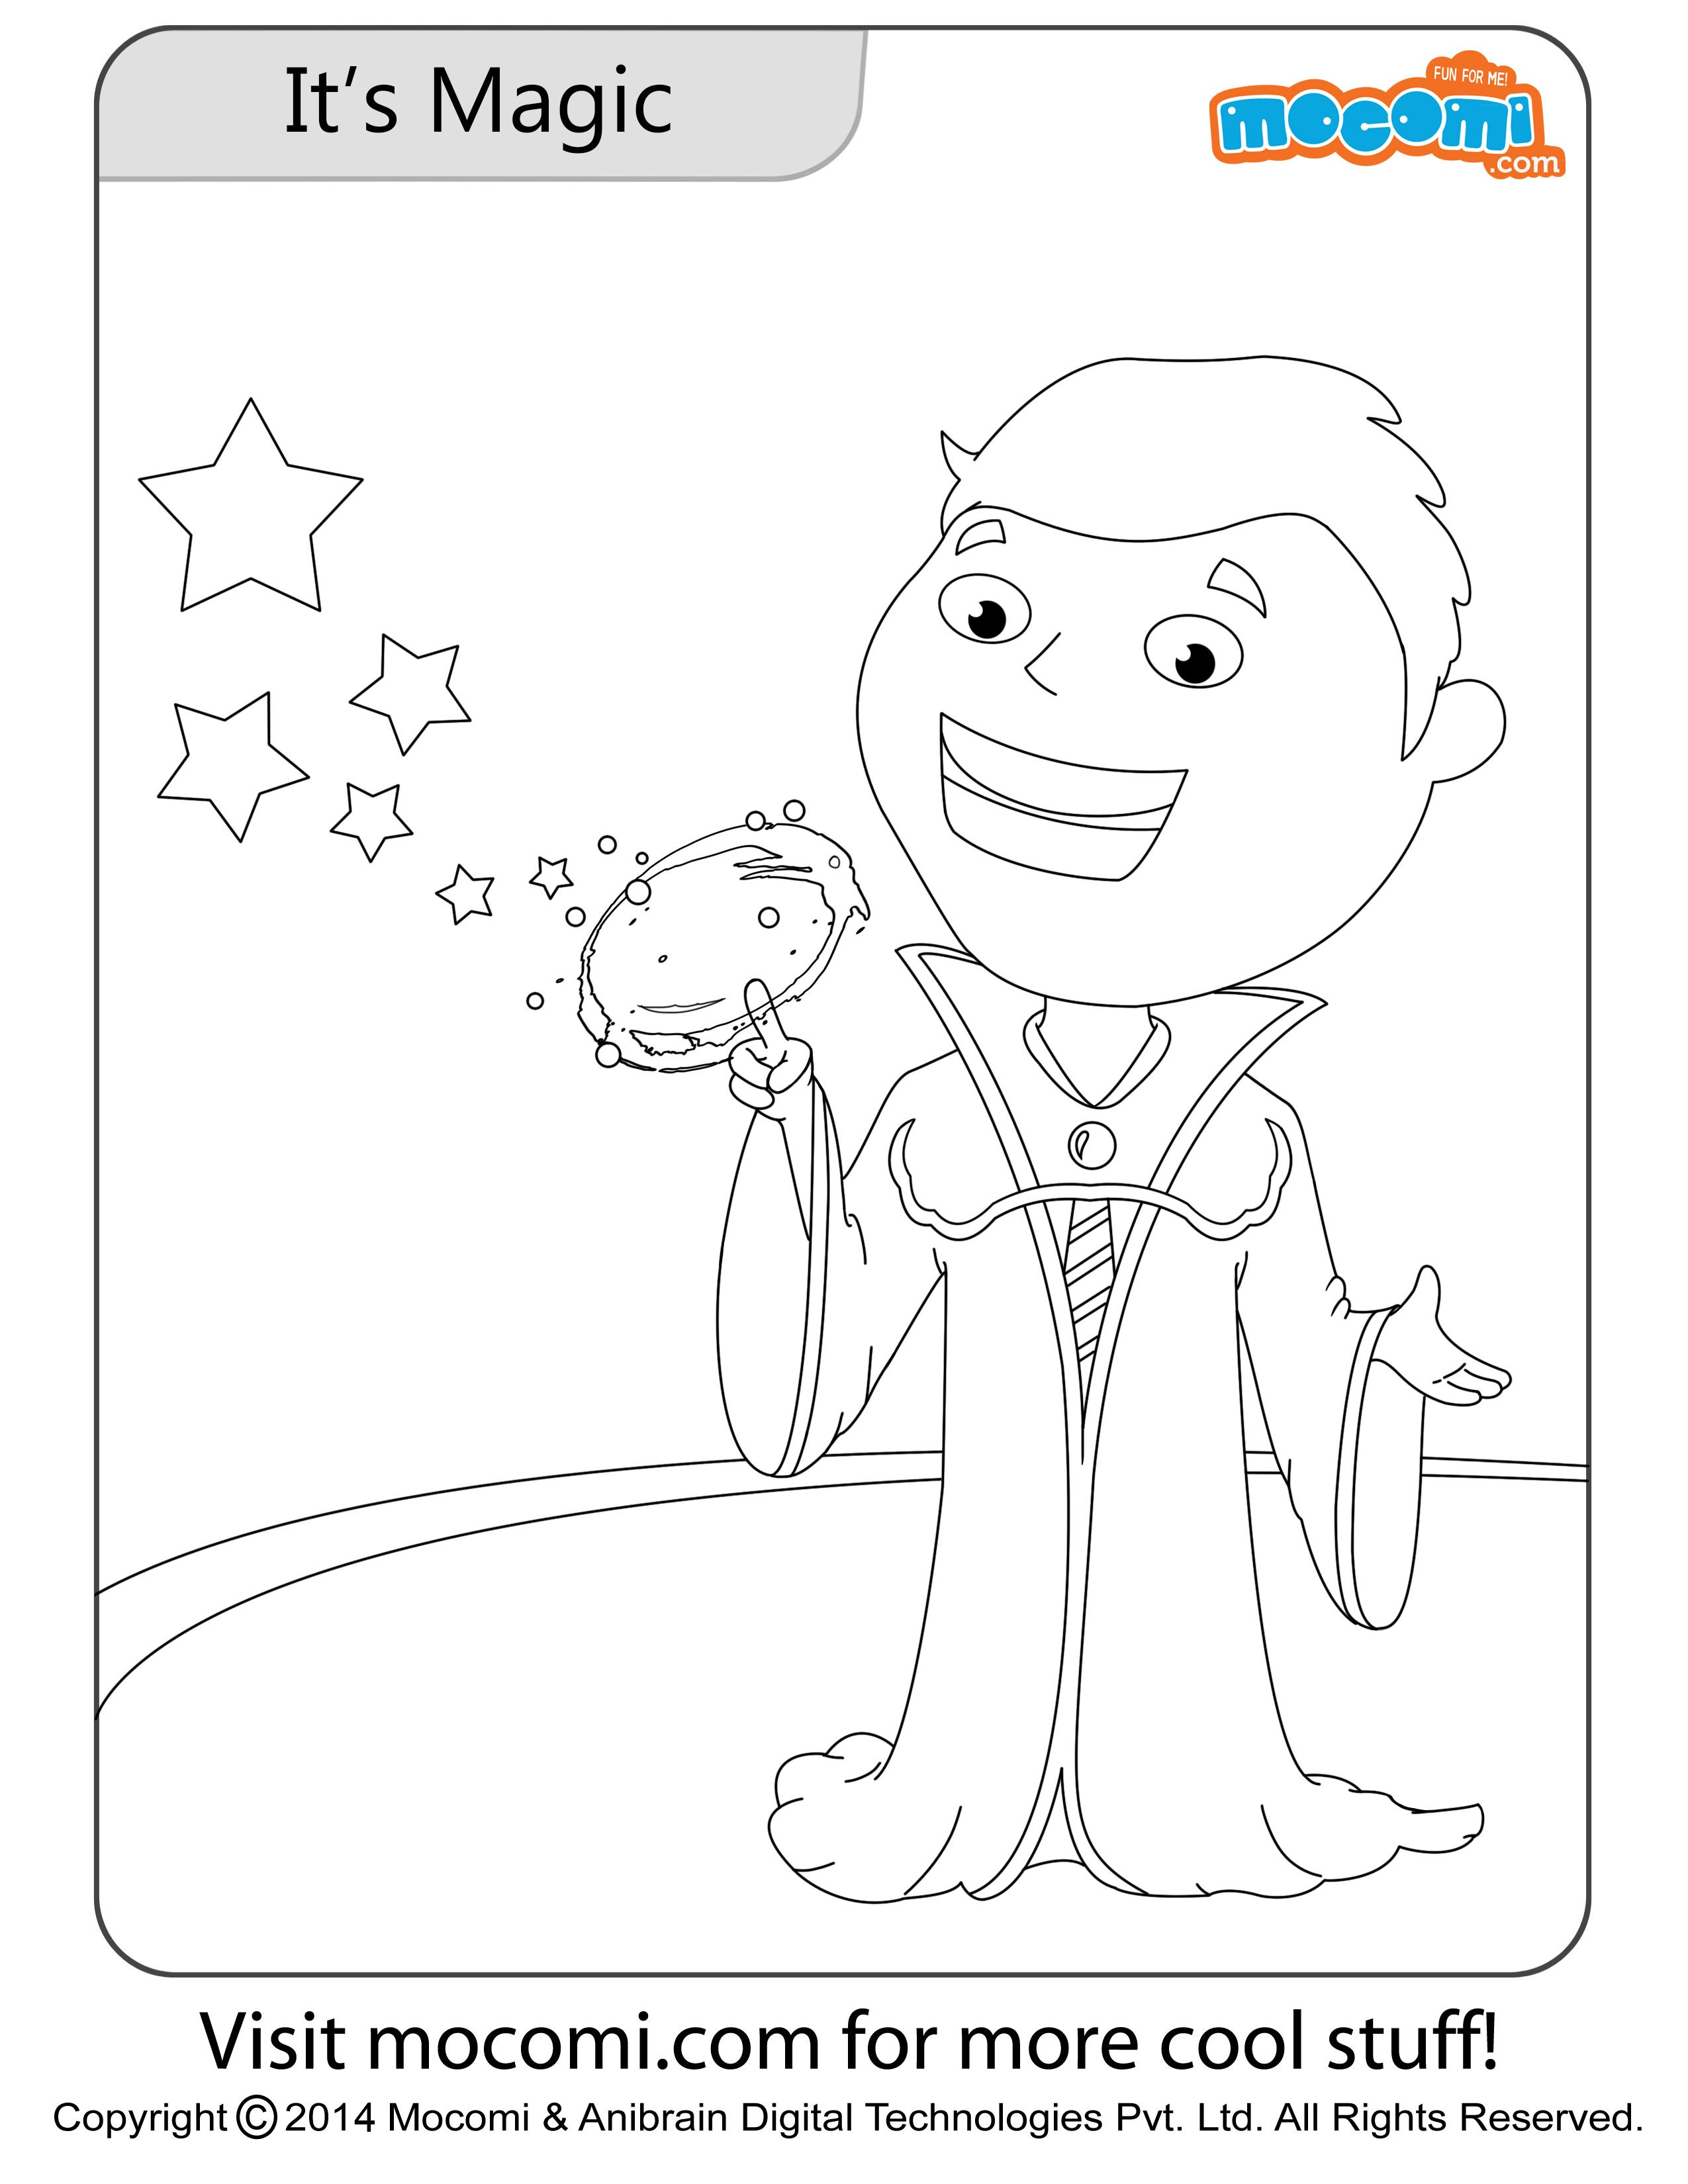 jojo and tricks go together online jojo colouring page for kids free printable coloring pages for a variety of themes that you can print out and color